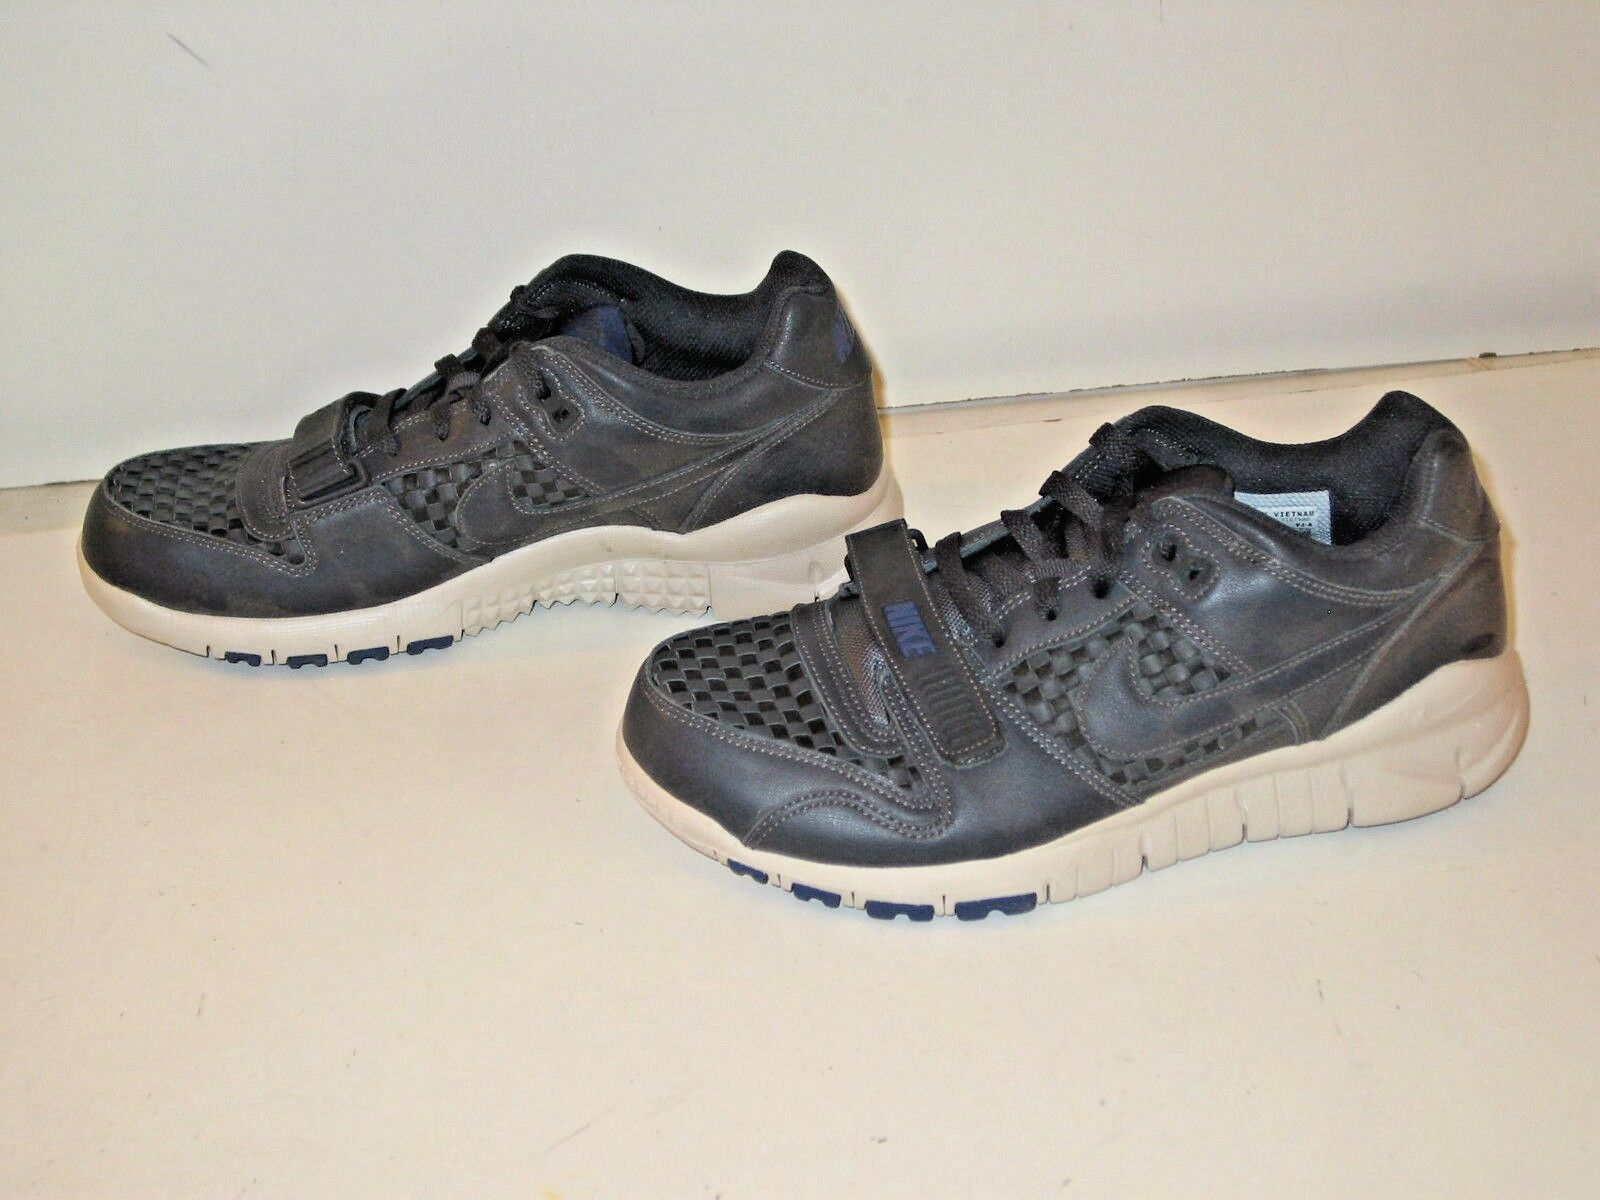 san francisco 25f63 586c5 ... Nike Trainer Dunk Low Low Low SP Gray Cross Training Athletic Sneakers  Shoes Mens 8 32daf9 ...